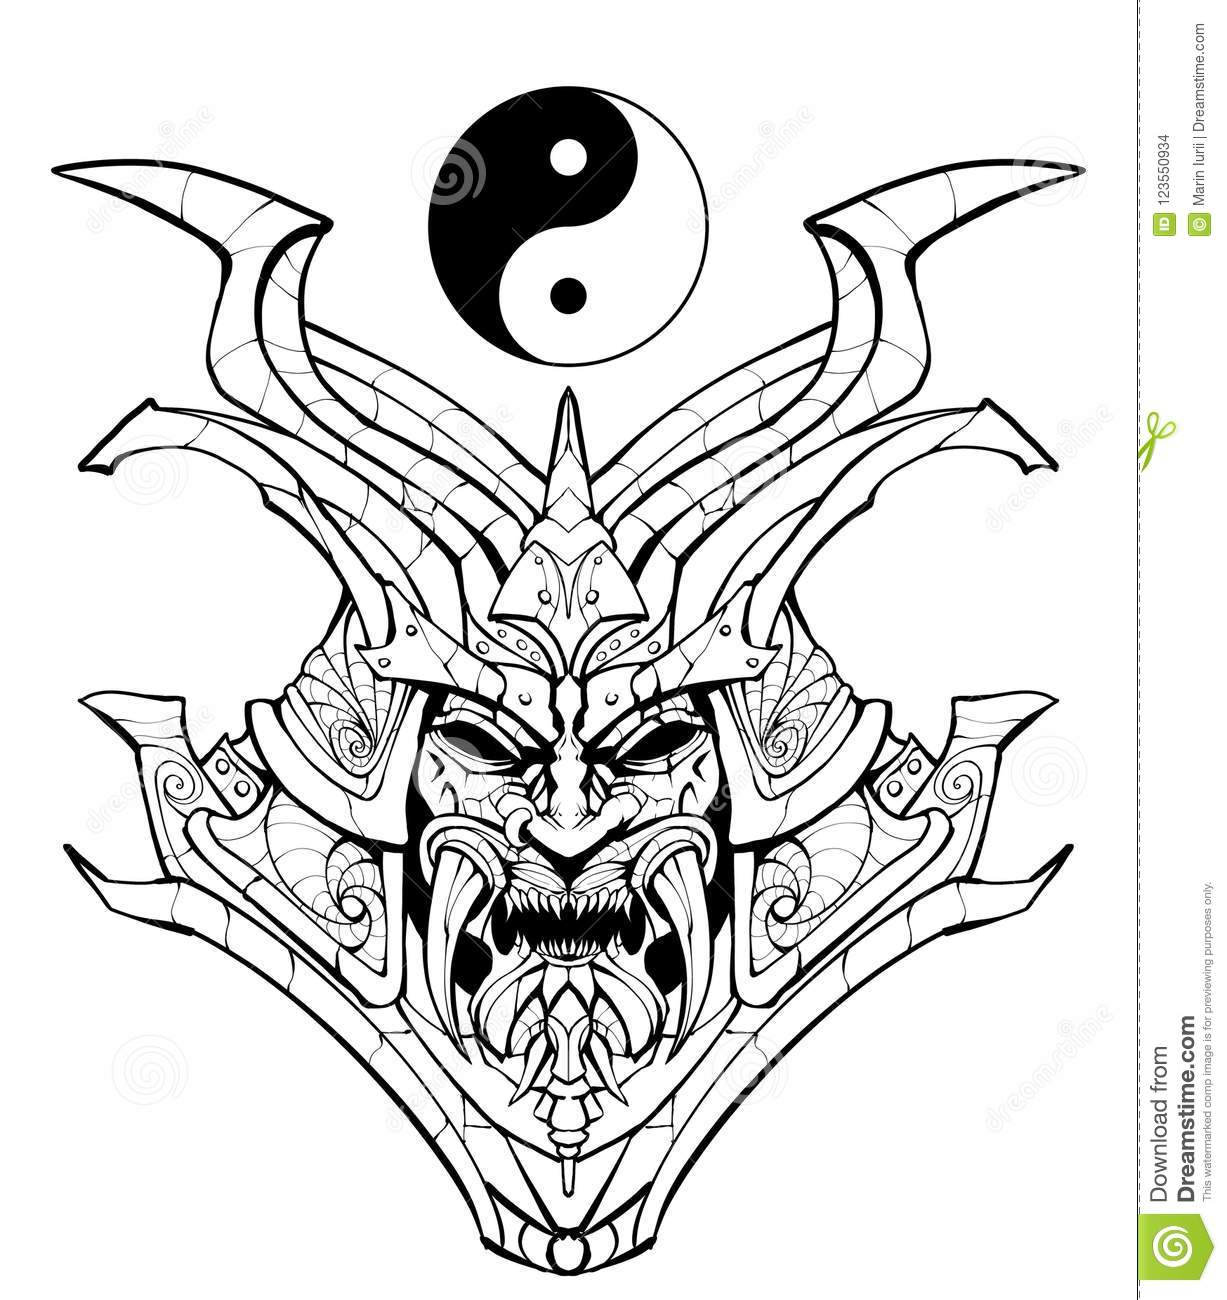 Coloring Page Sinister Samurai Mask Stock Illustration Neo Coloring